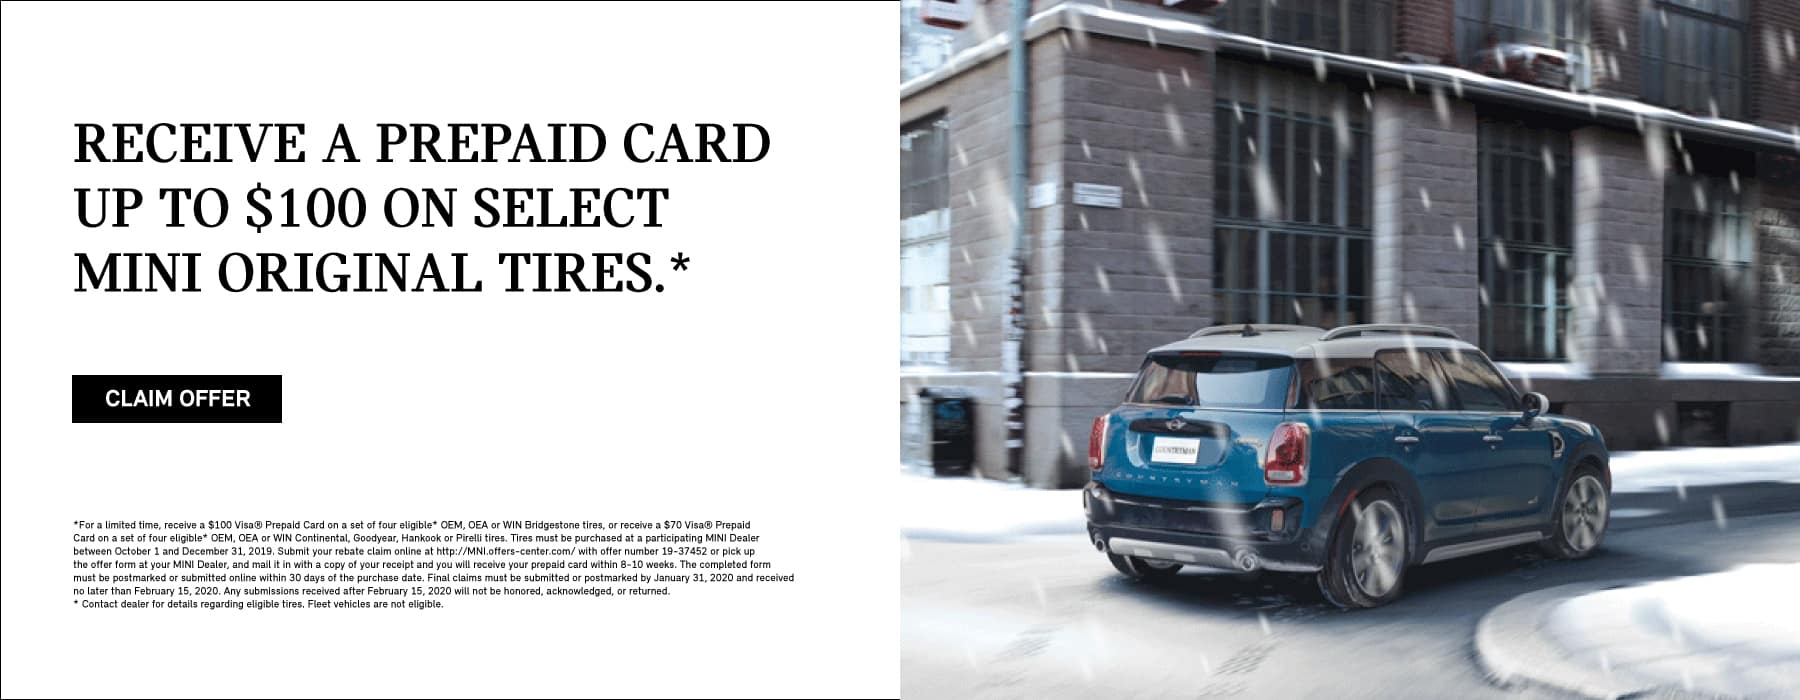 RECEIVE A PREPAID CARD UP TO $100 ON SELECT MINI ORIGINAL TIRES. Receive a $100 Visa® prepaid card with the purchase of four eligible*